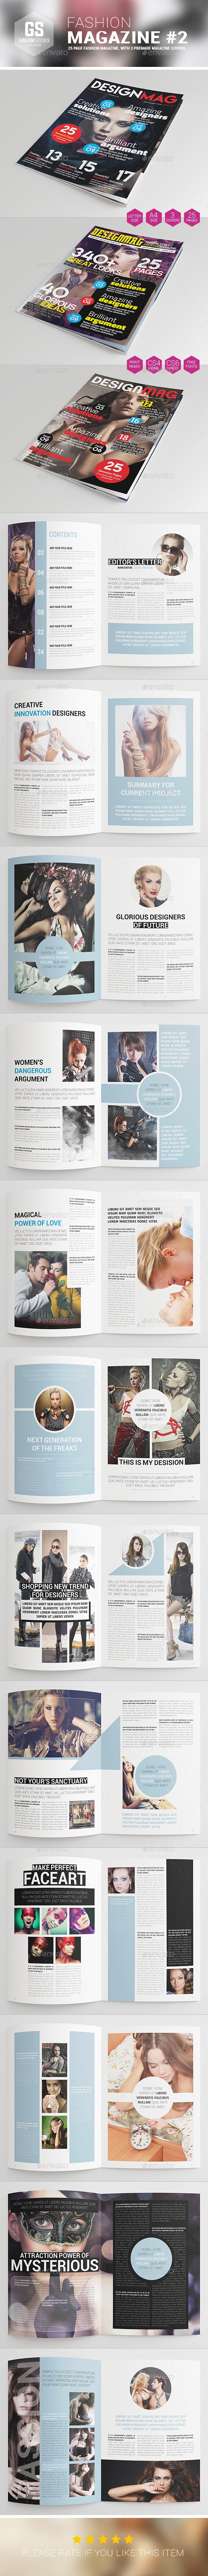 GraphicRiver Fashion Magazine #2 9276566